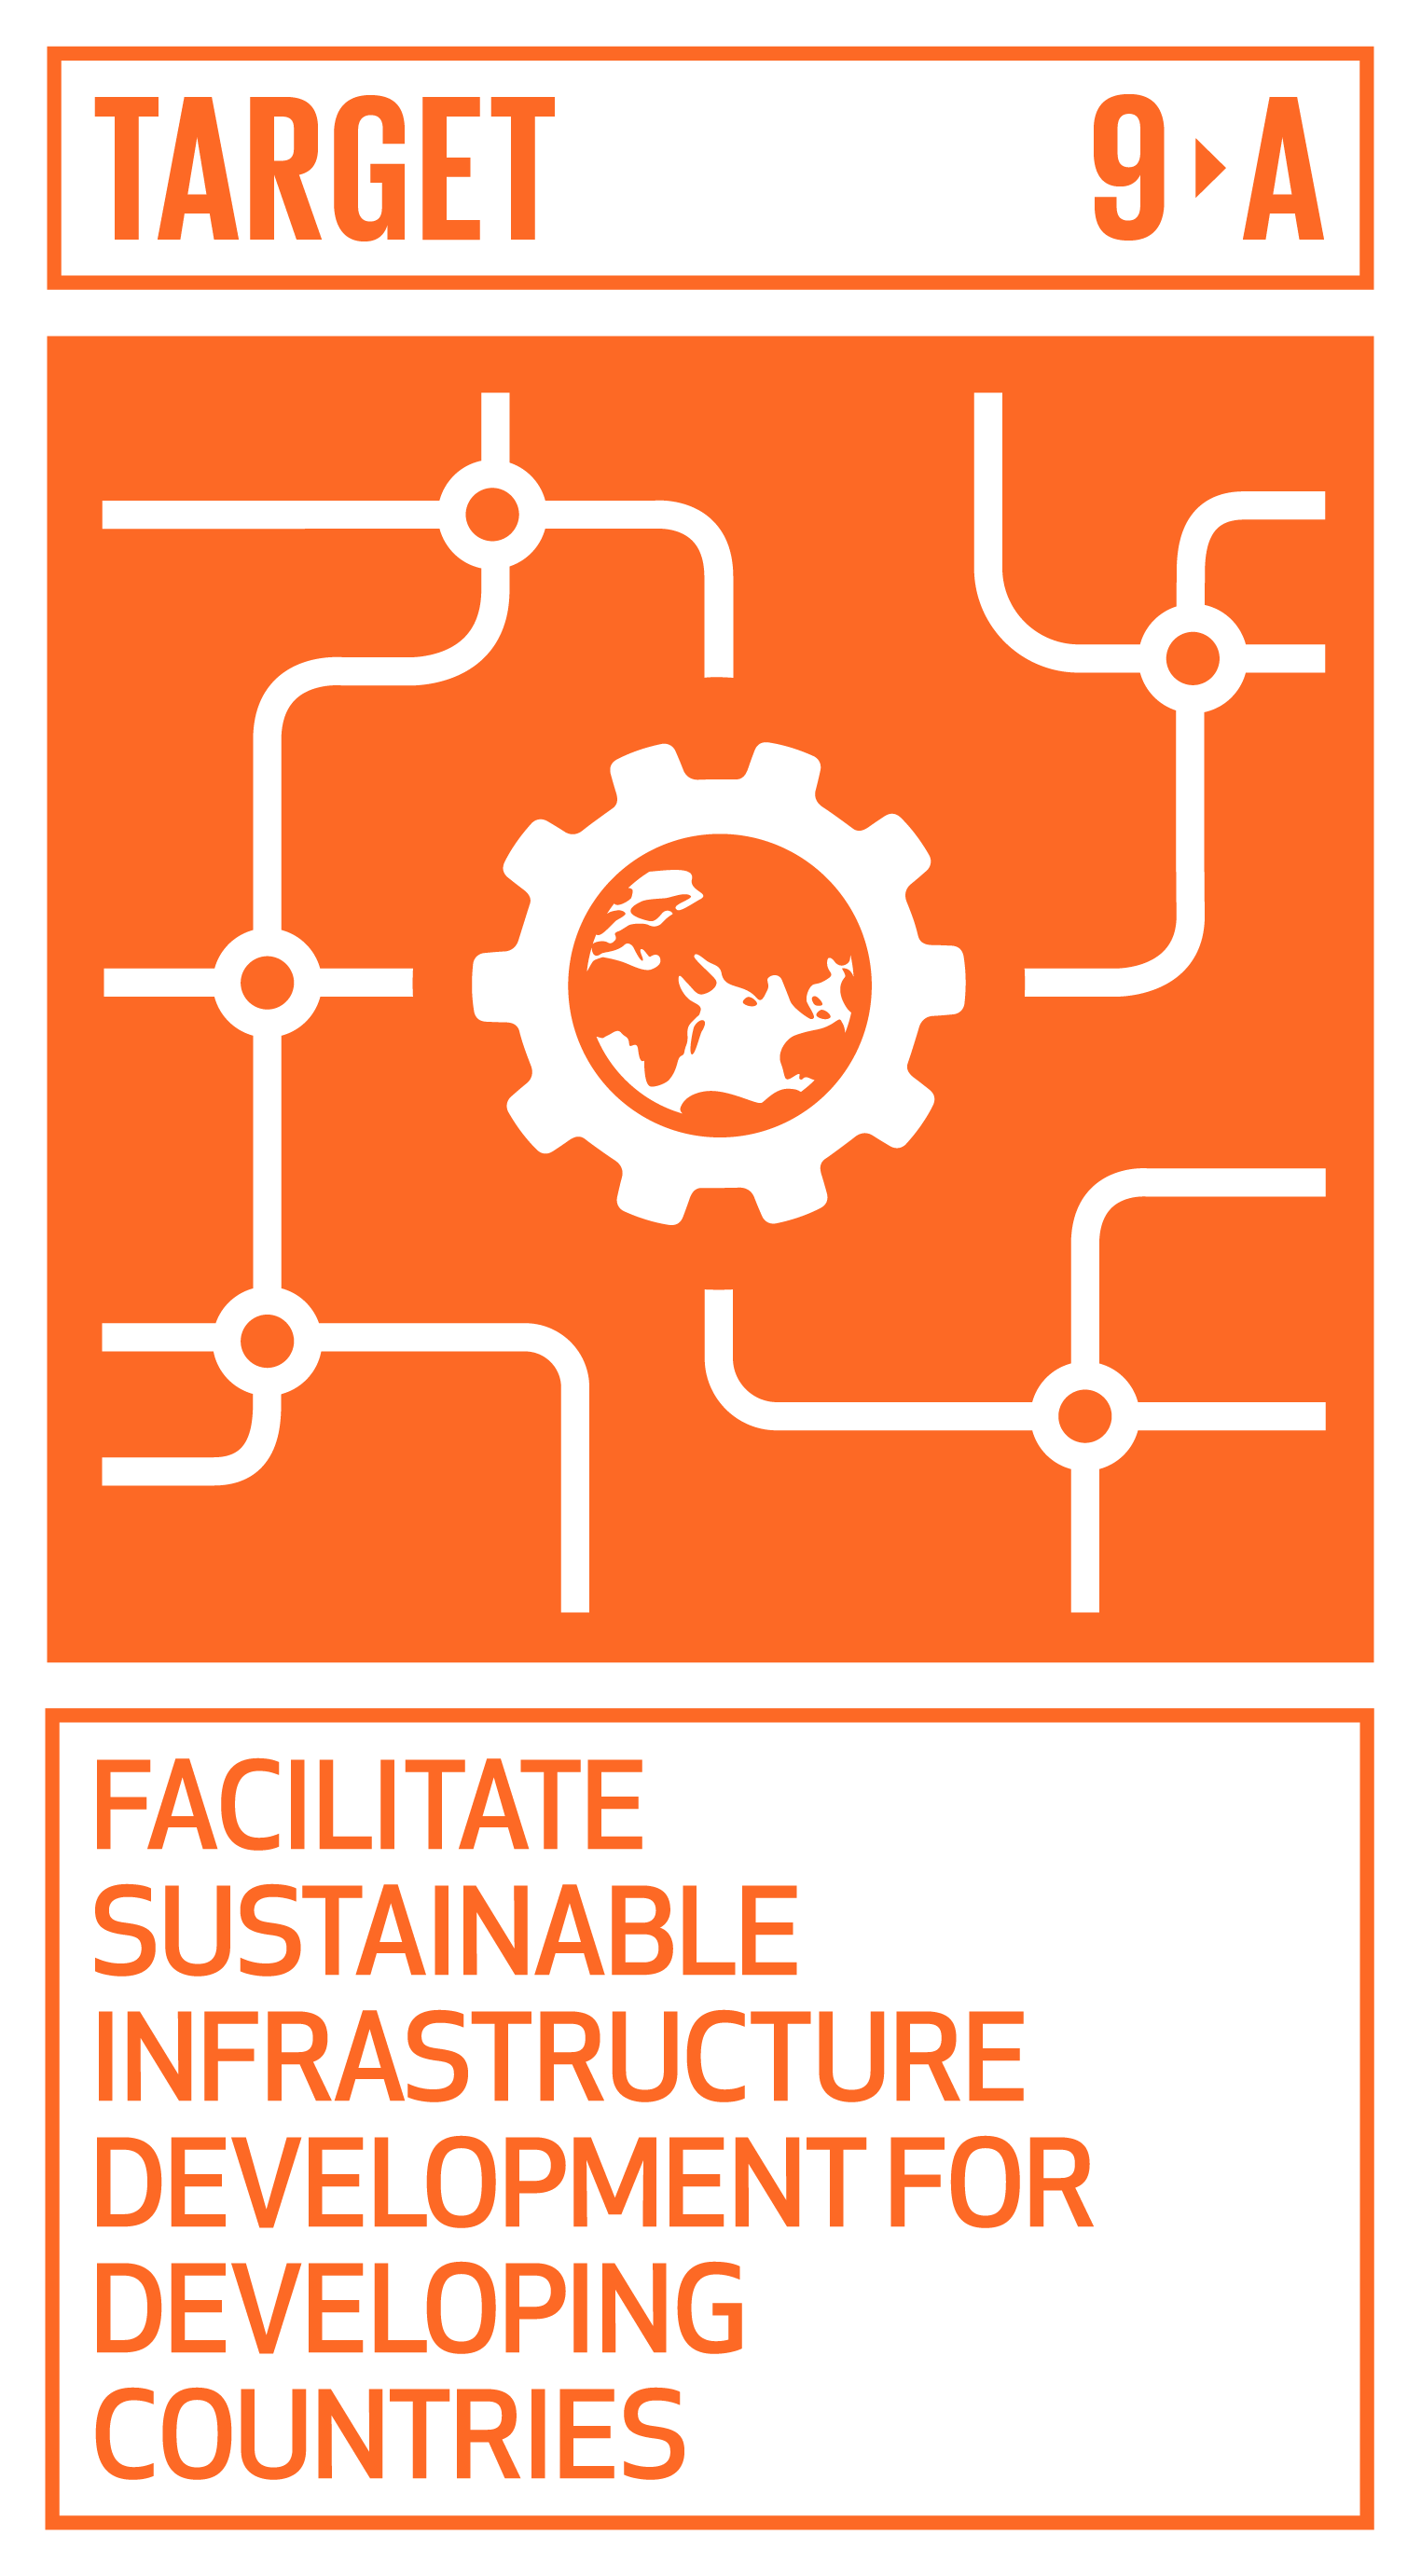 Facilitate sustainable and resilient infrastructure development in developing countries through enhanced financial, technological and technical support to African countries, least developed countries, landlocked developing countries and small island developing States.   INDICATOR    9.a.1  Total official international support (official development assistance plus other official flows) to infrastructure